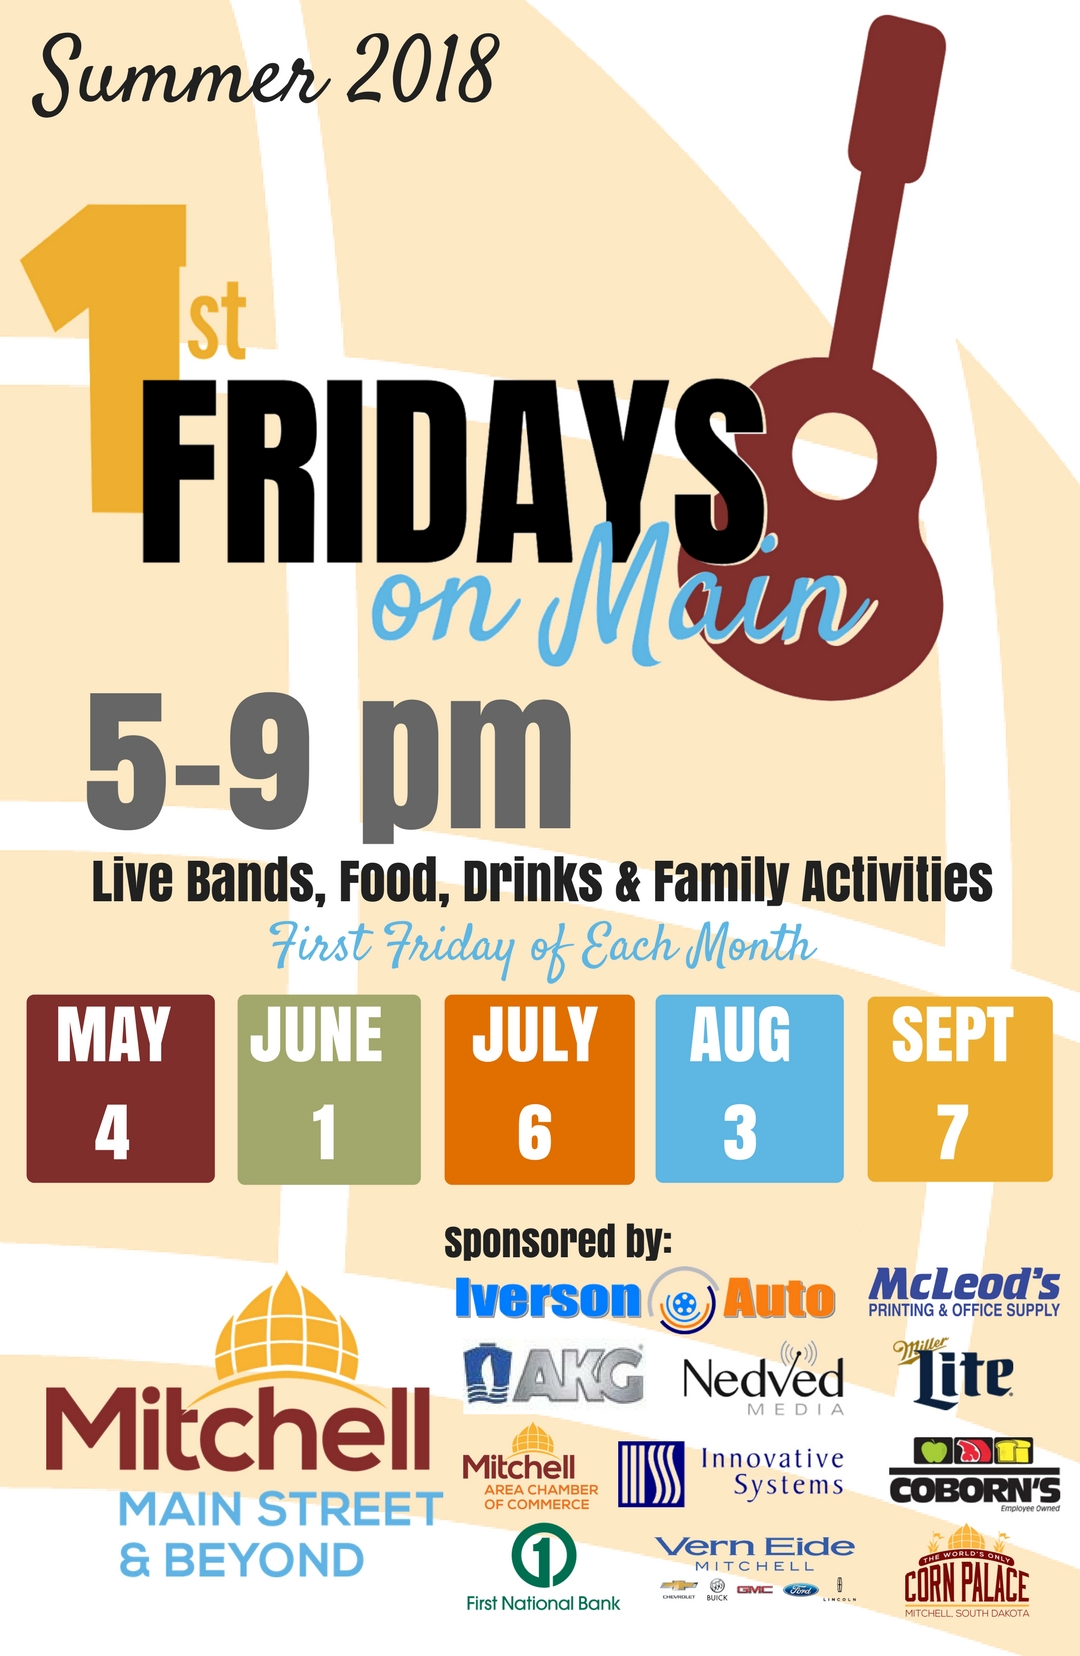 1st Fridays on Main